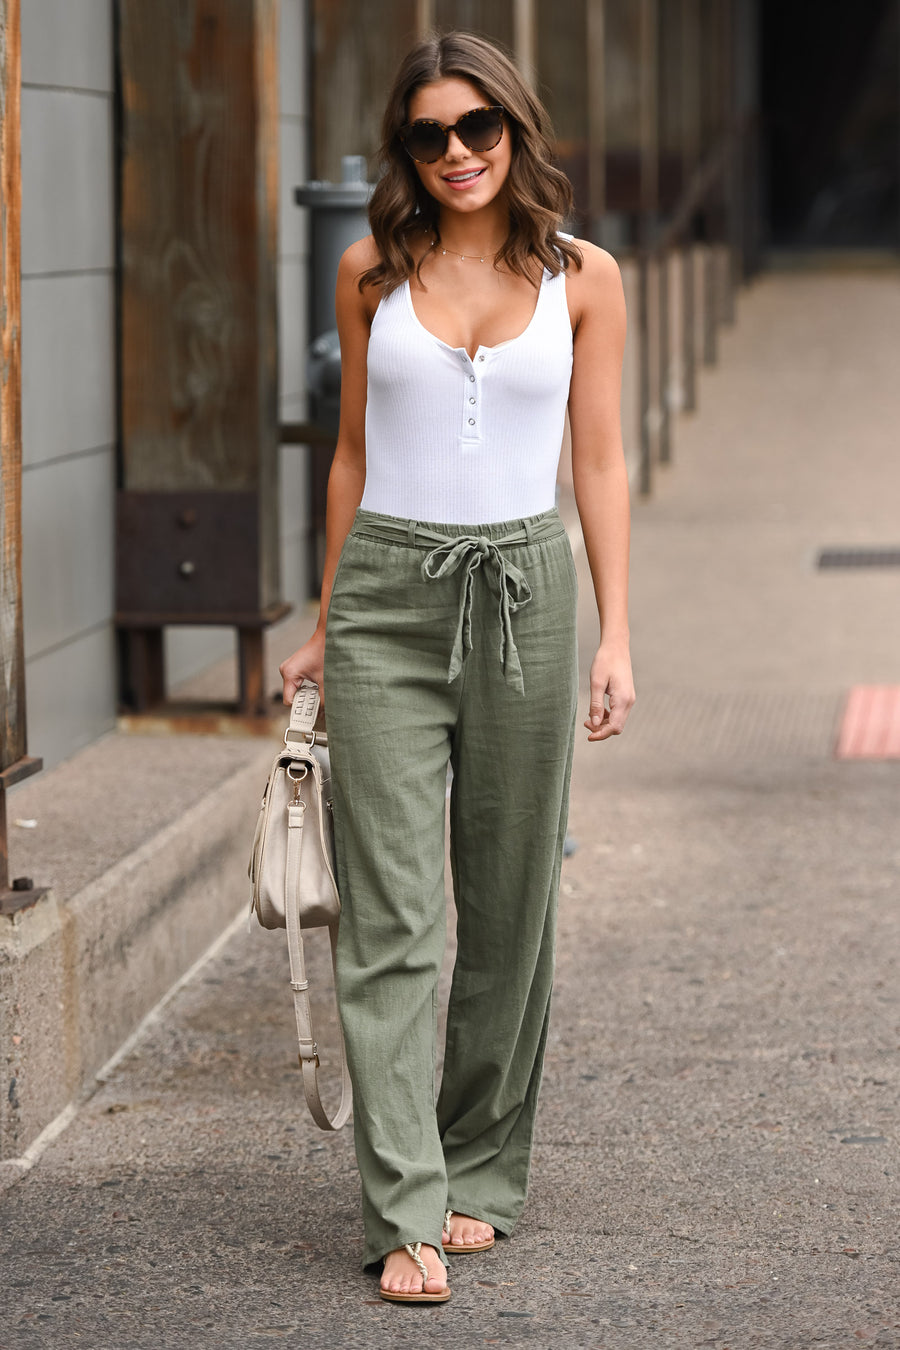 Melrose Ave Palazzo Pants - Olive women's high-waisted, wide leg pants, Closet Candy Boutique 1